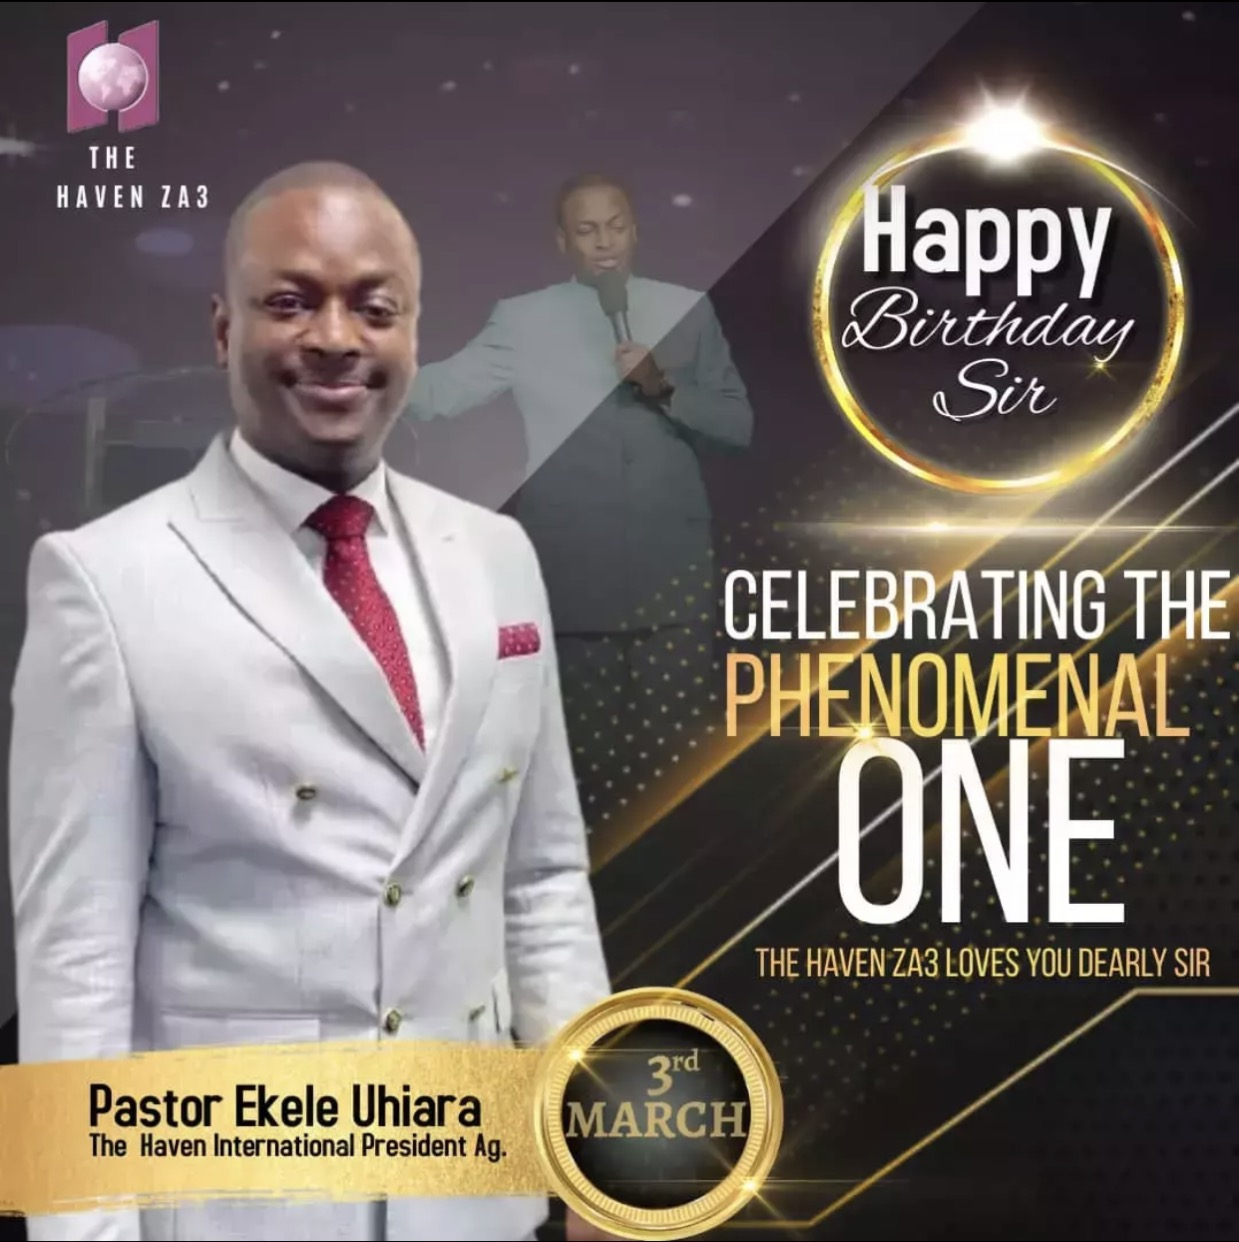 Celebrating God's Perfection and Grace